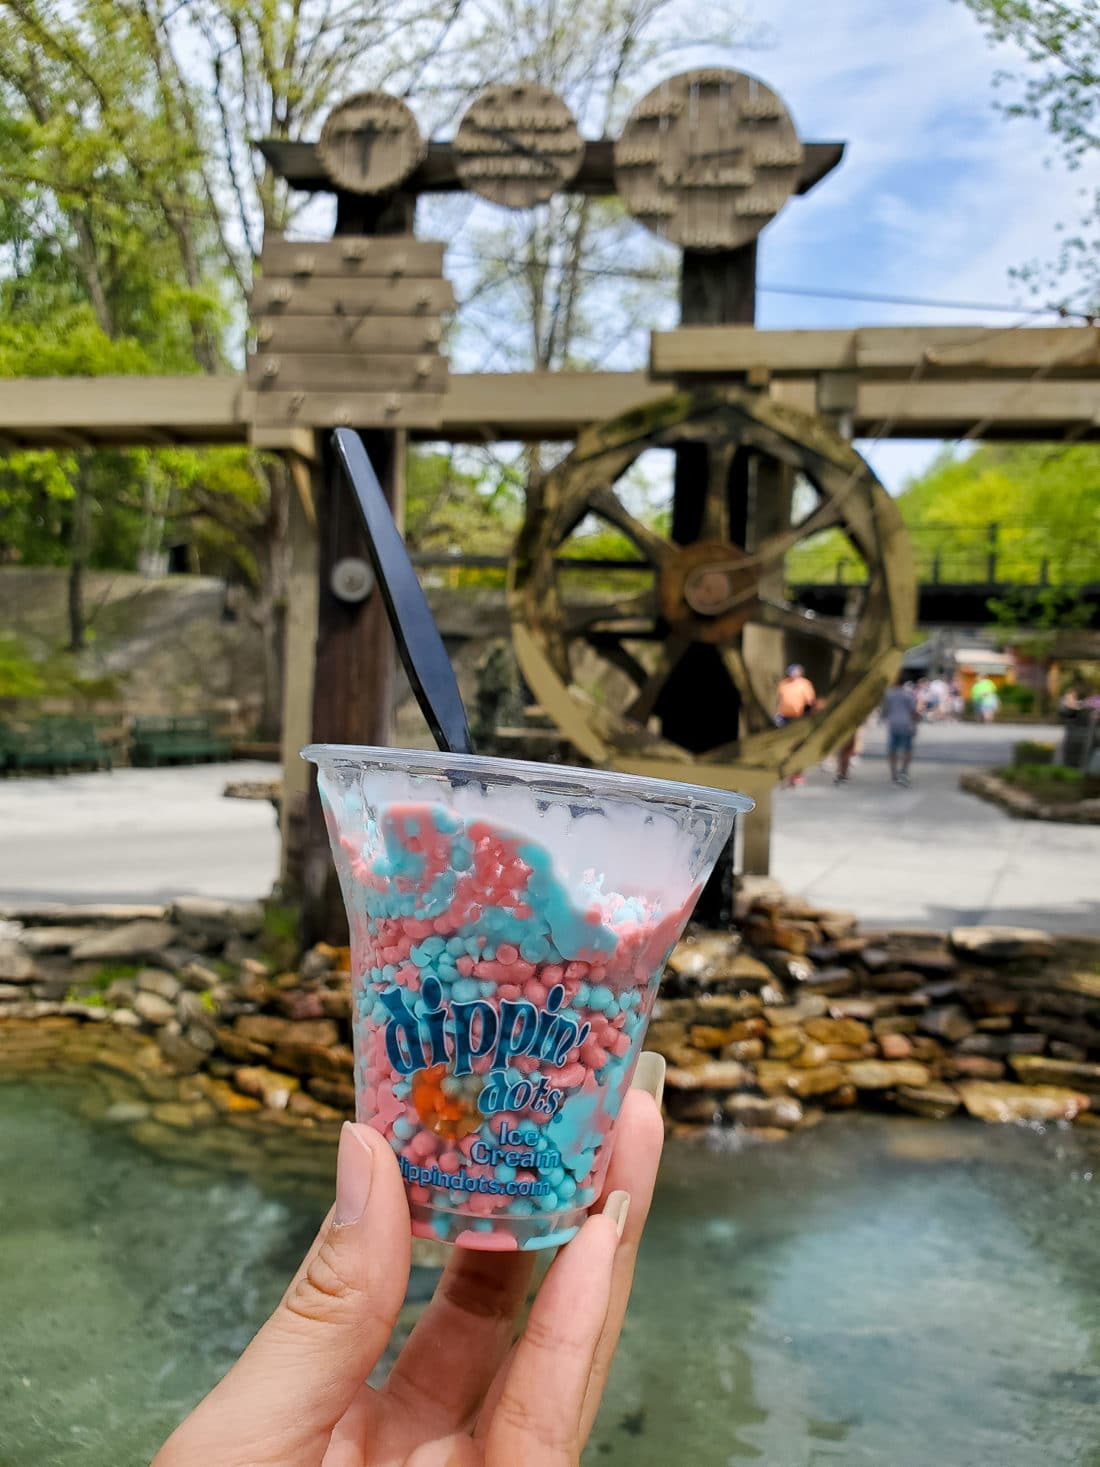 Dollywood Dippin Dots. My family spent the day playing and eating at the Dollywood theme park, and we are happy to report we had a blast! Read all about our trip and learn why Dollwood is a must visit destination while you are in Pigeon Forge, TN.